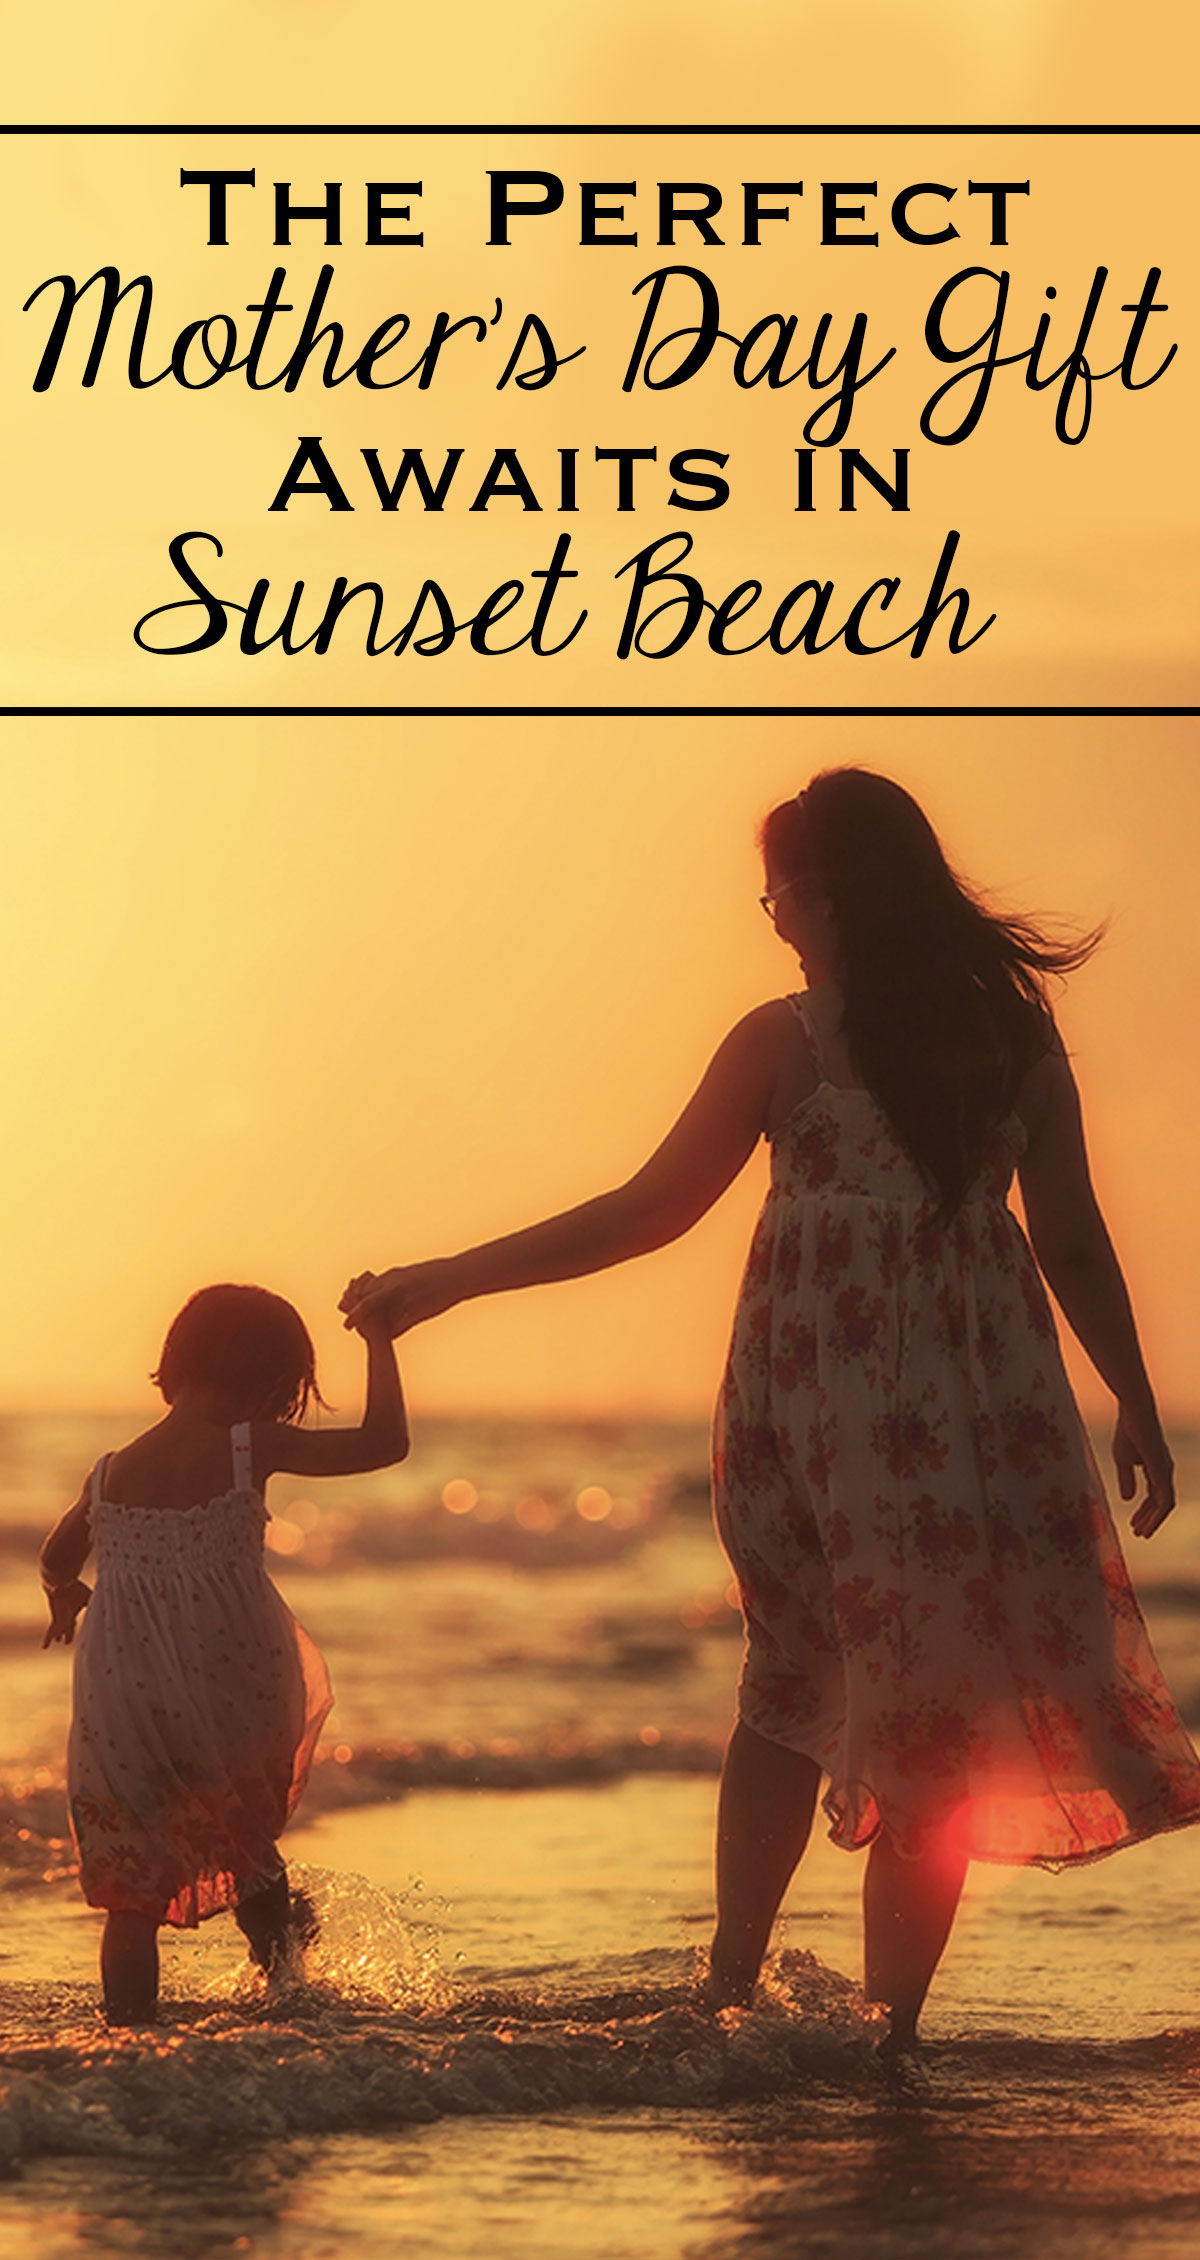 The Perfect Mother's Day Gift Awaits in Sunset Beach Pin